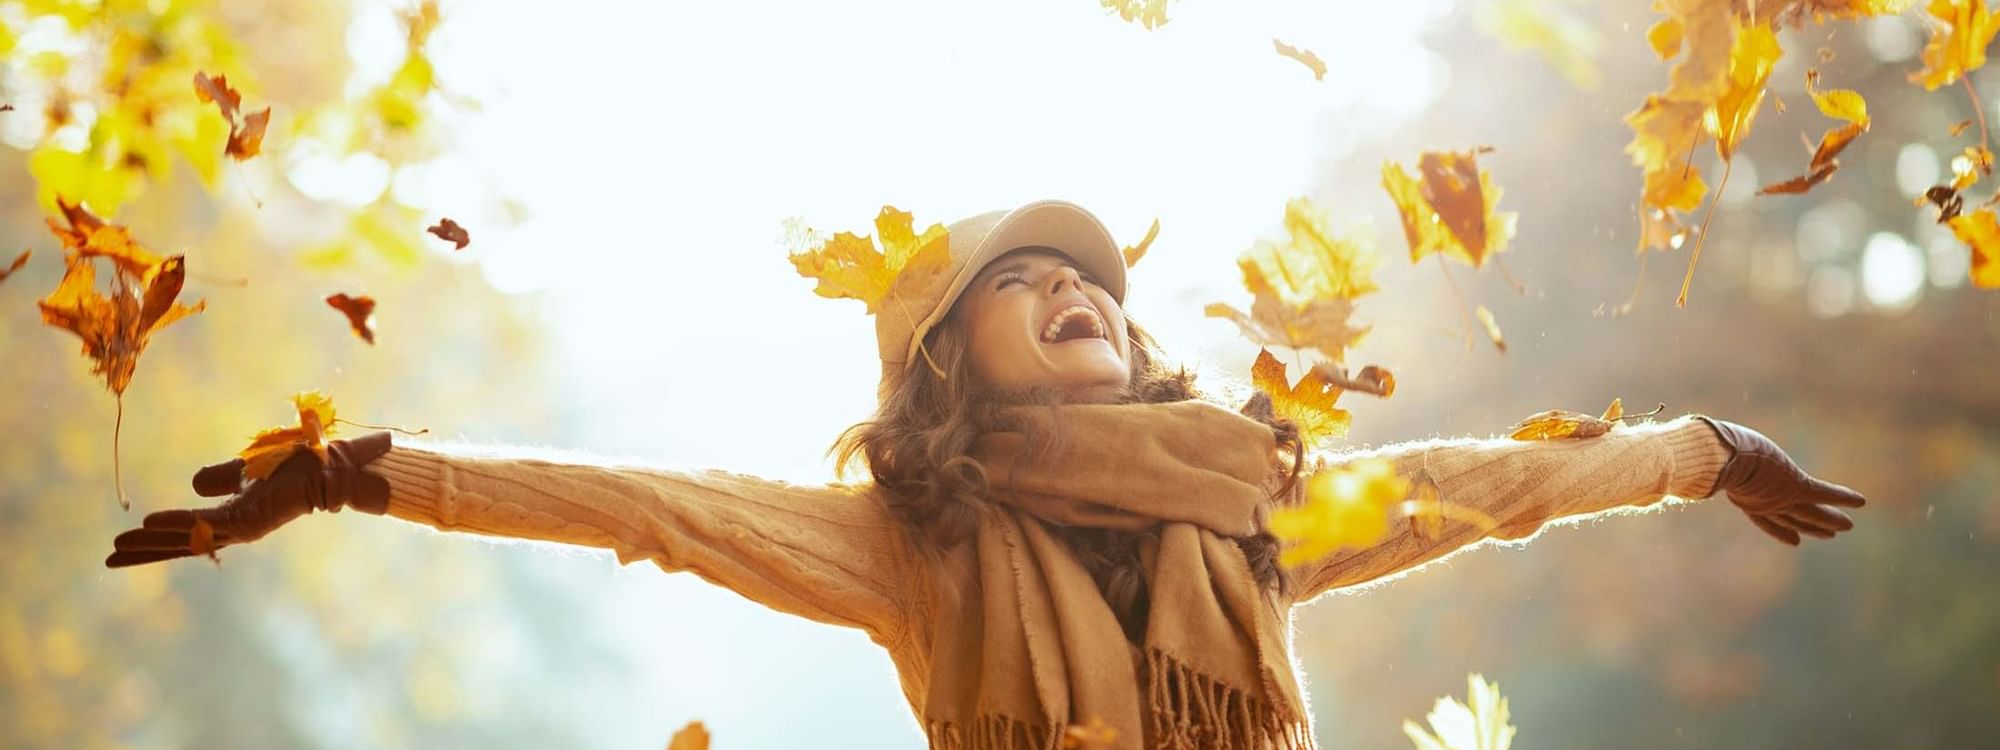 Woman catching falling yellow leaves